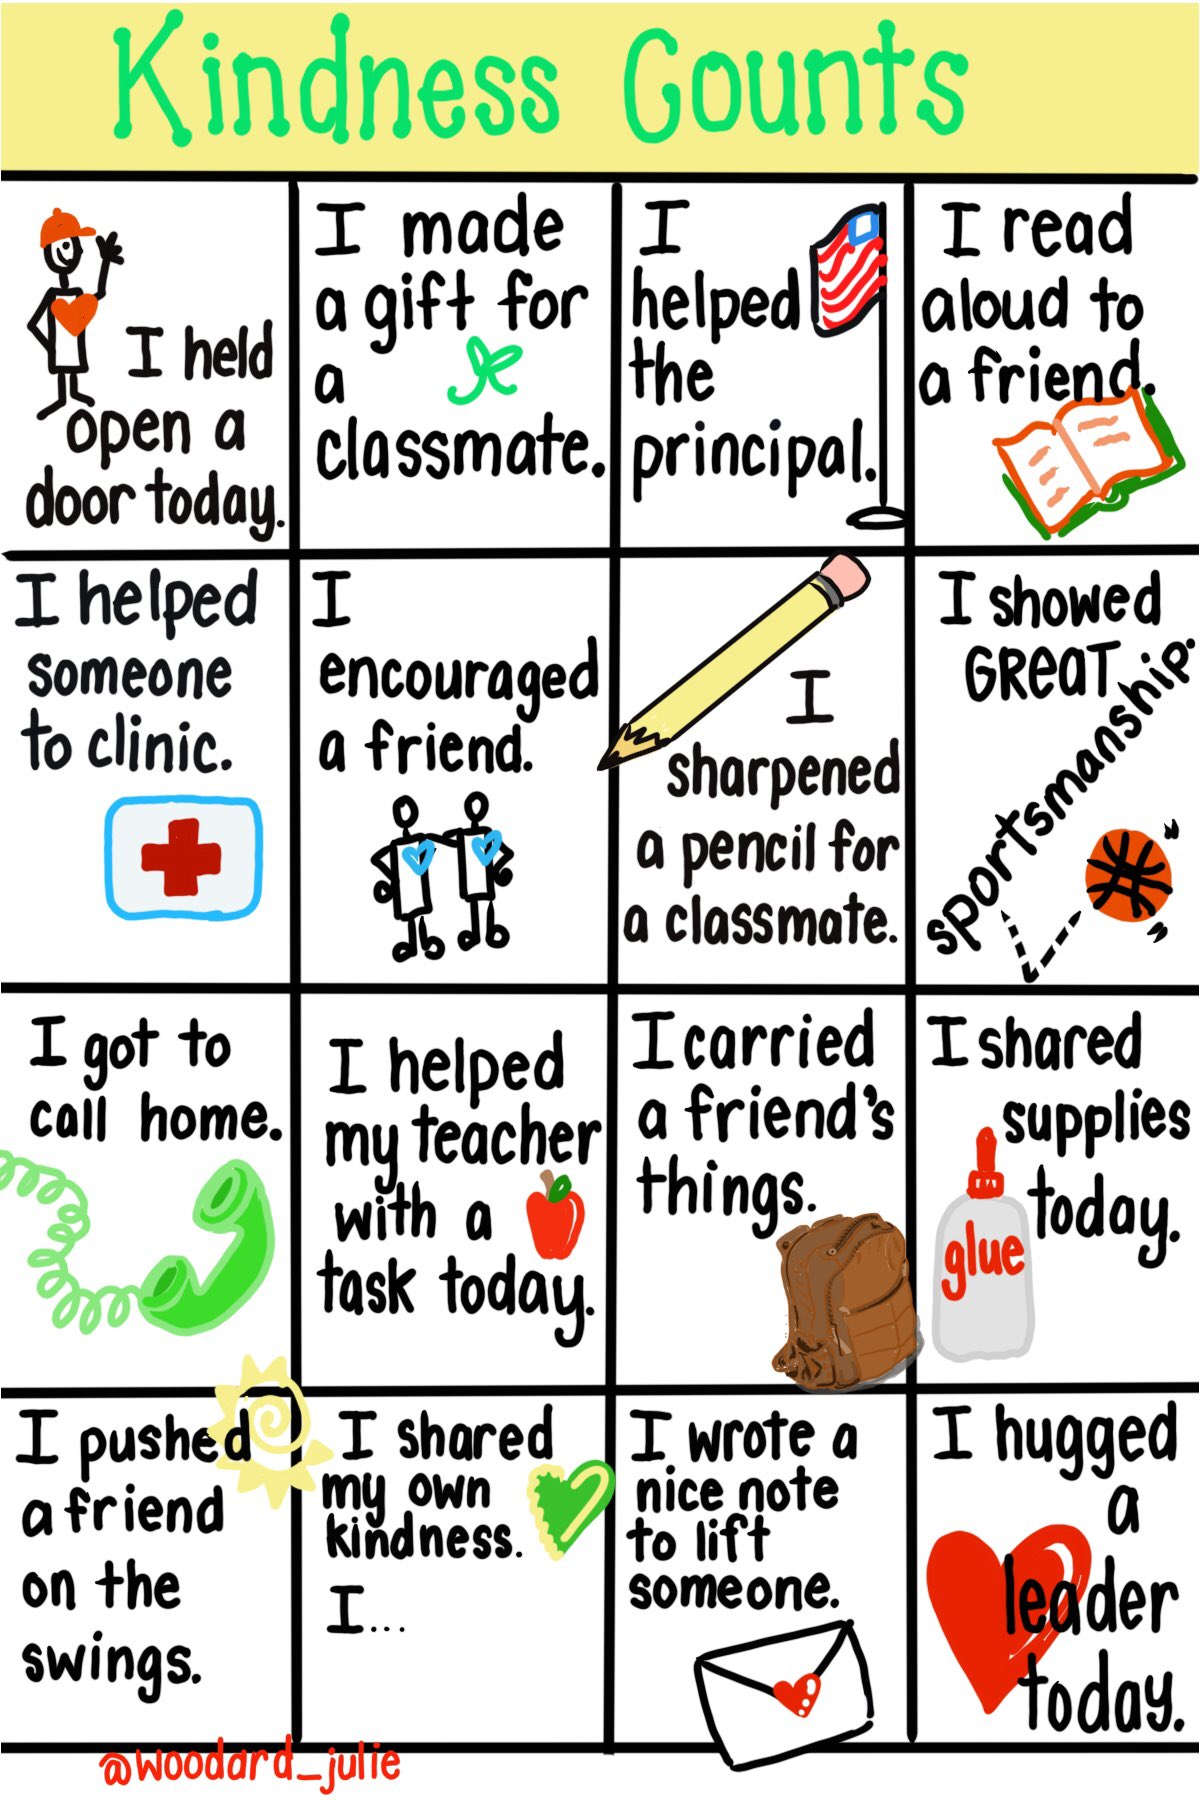 #Kindness bingo could be a fun idea to use with kids in the fall! Beautiful graphic by @woodard_julie #edchat #SEL #sketchnote https://t.co/NxXRCm5S2w